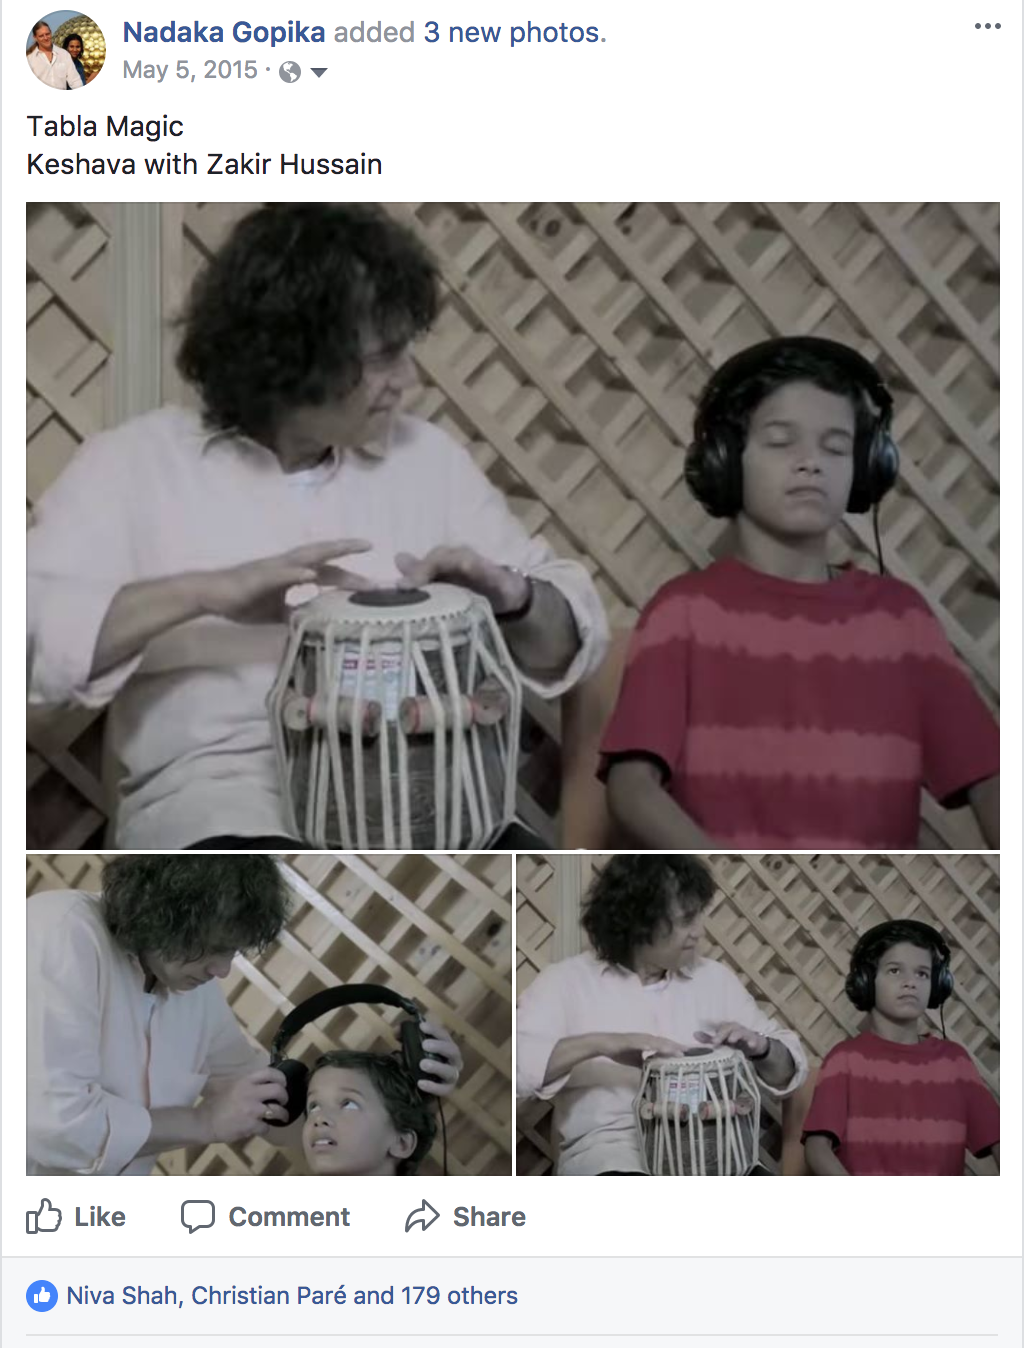 Zakir Hussain with Keshava